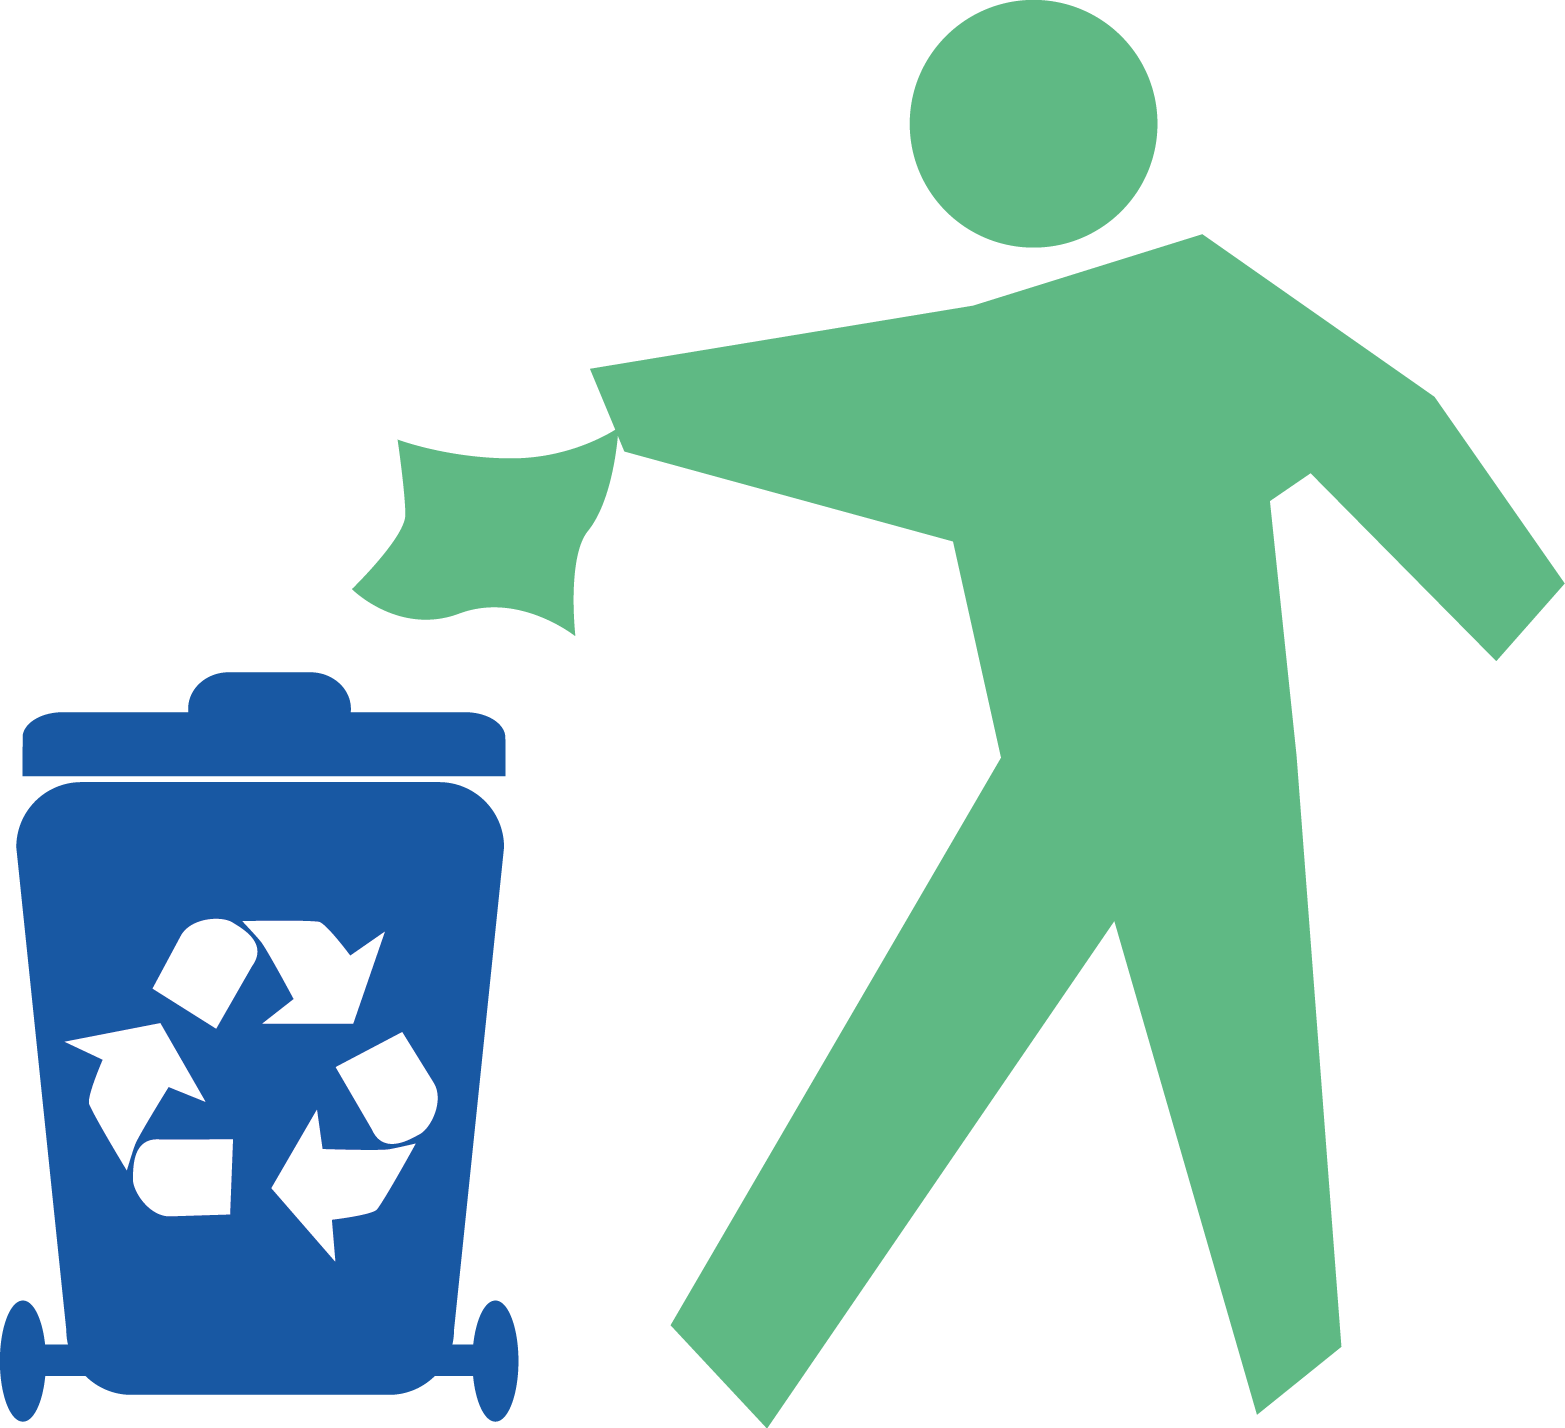 Newspaper clipart recycled paper. Recycling facts trivia research